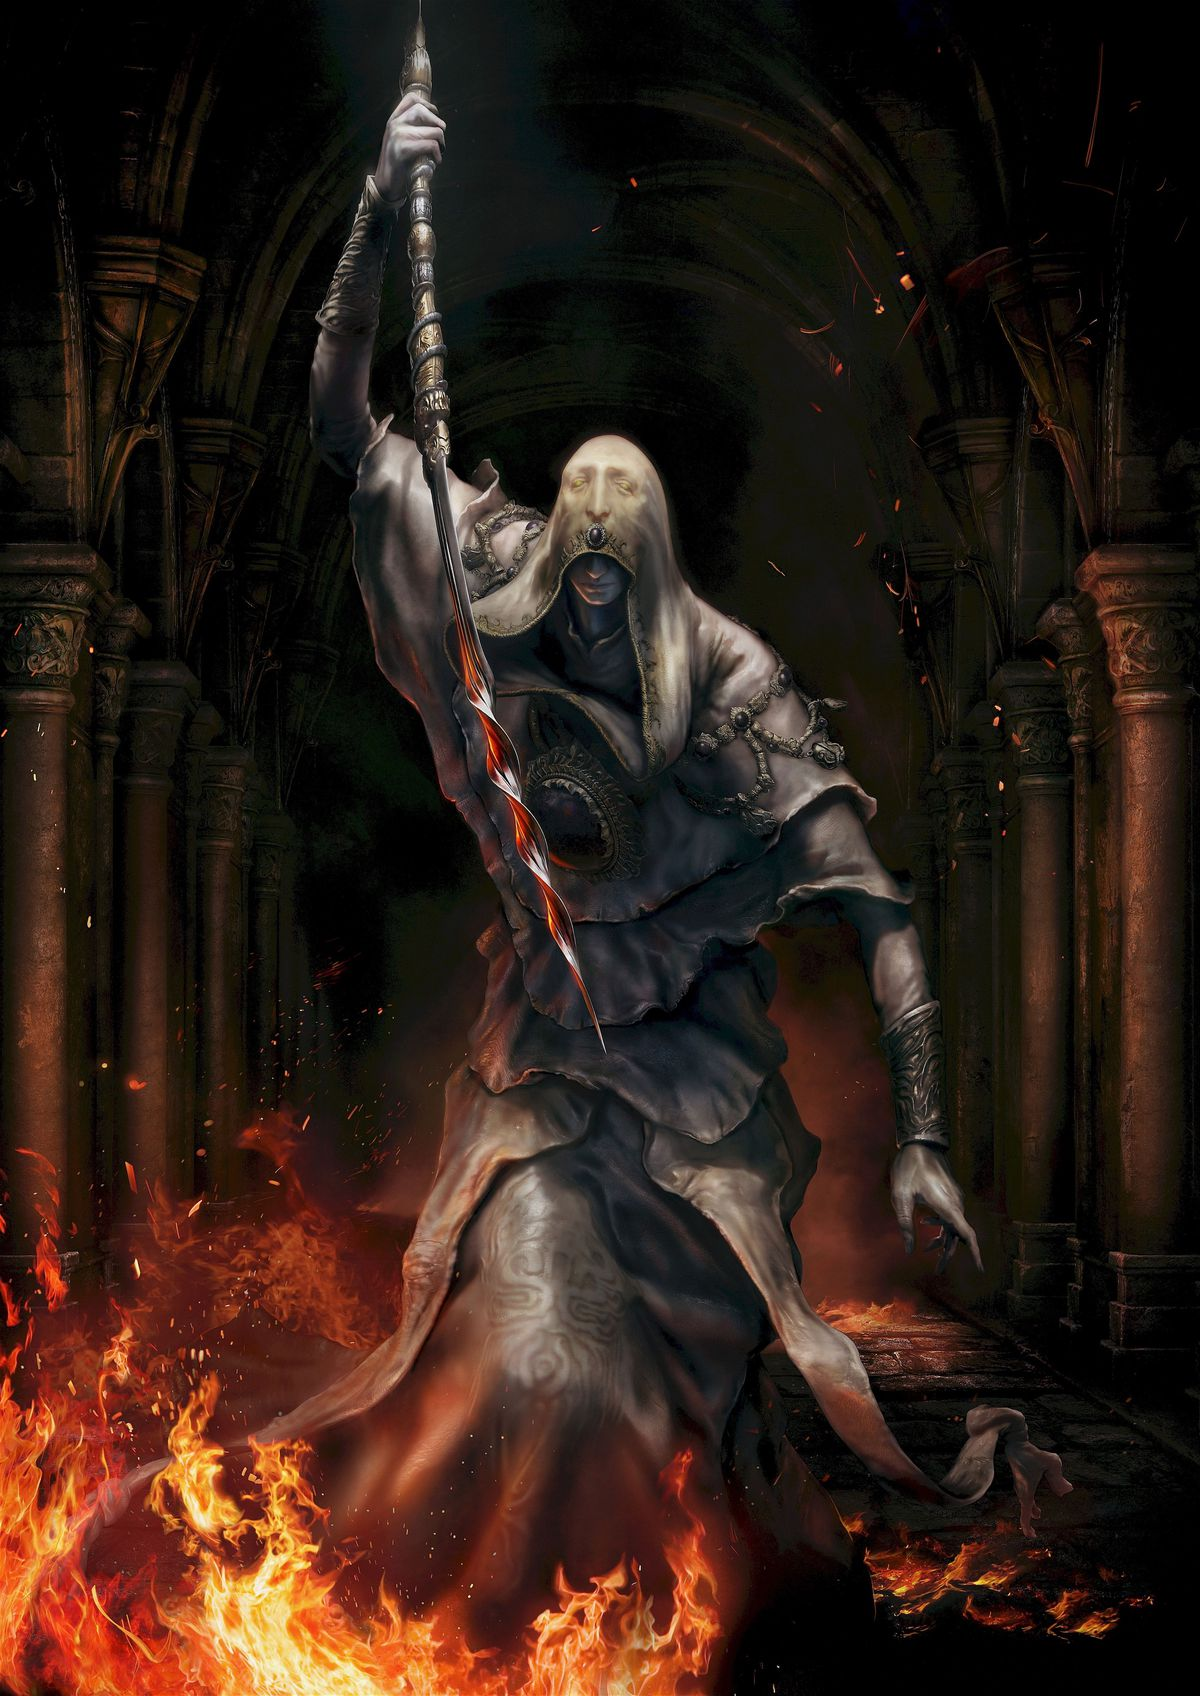 Artwork of a robed character wielding a spiral sword from Elden Ring.